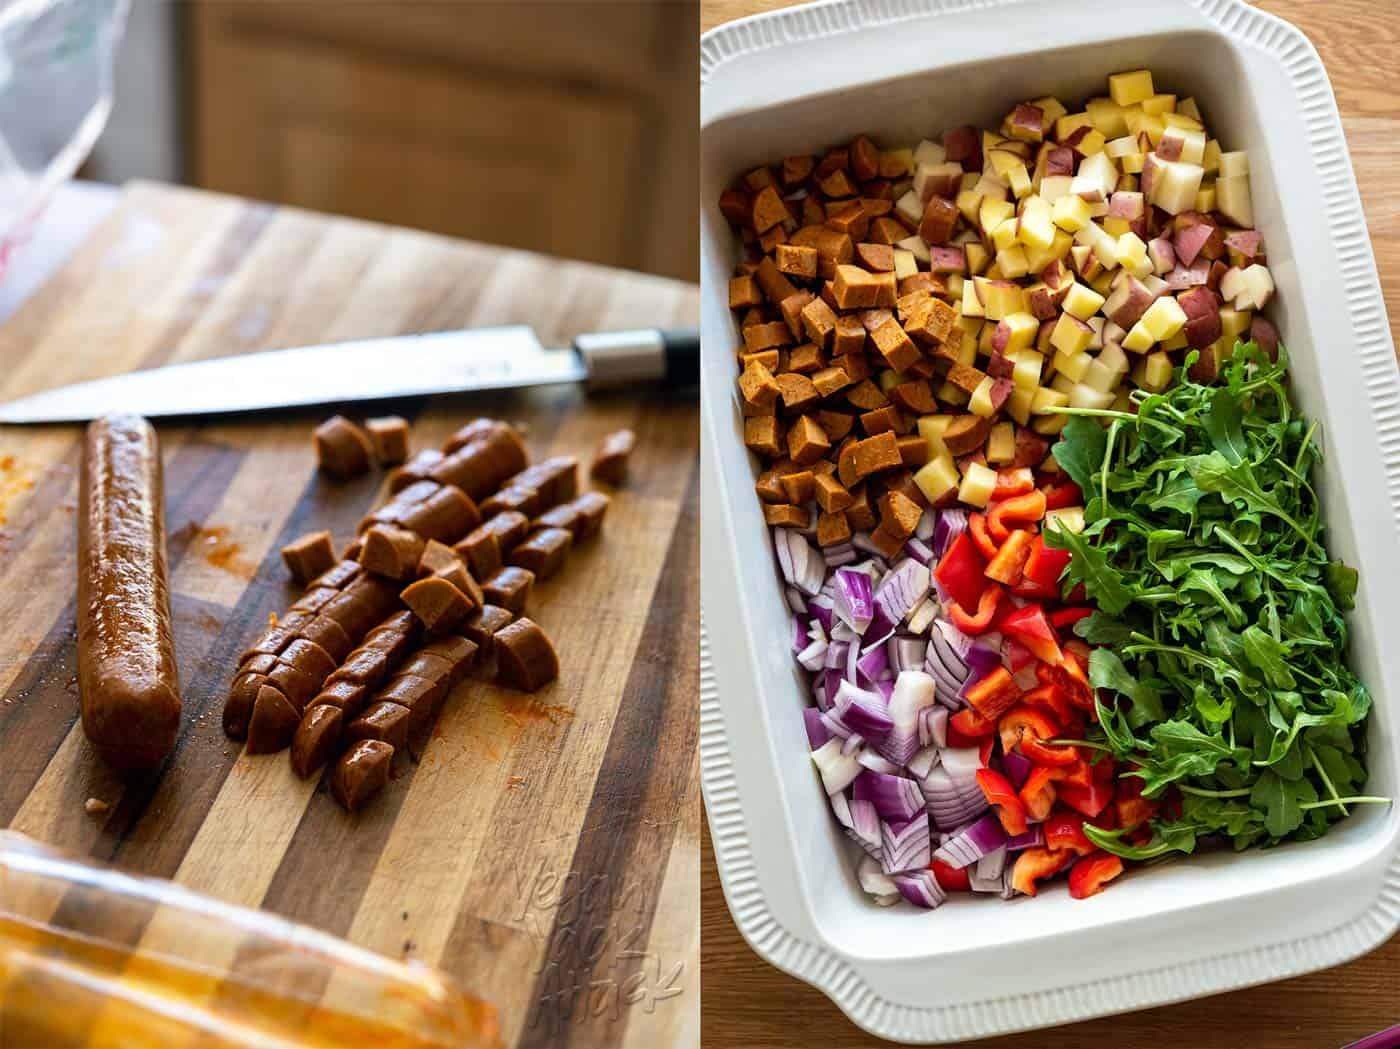 Image left: chopping vegan chorizo, image right: casserole ingredients in baking dish